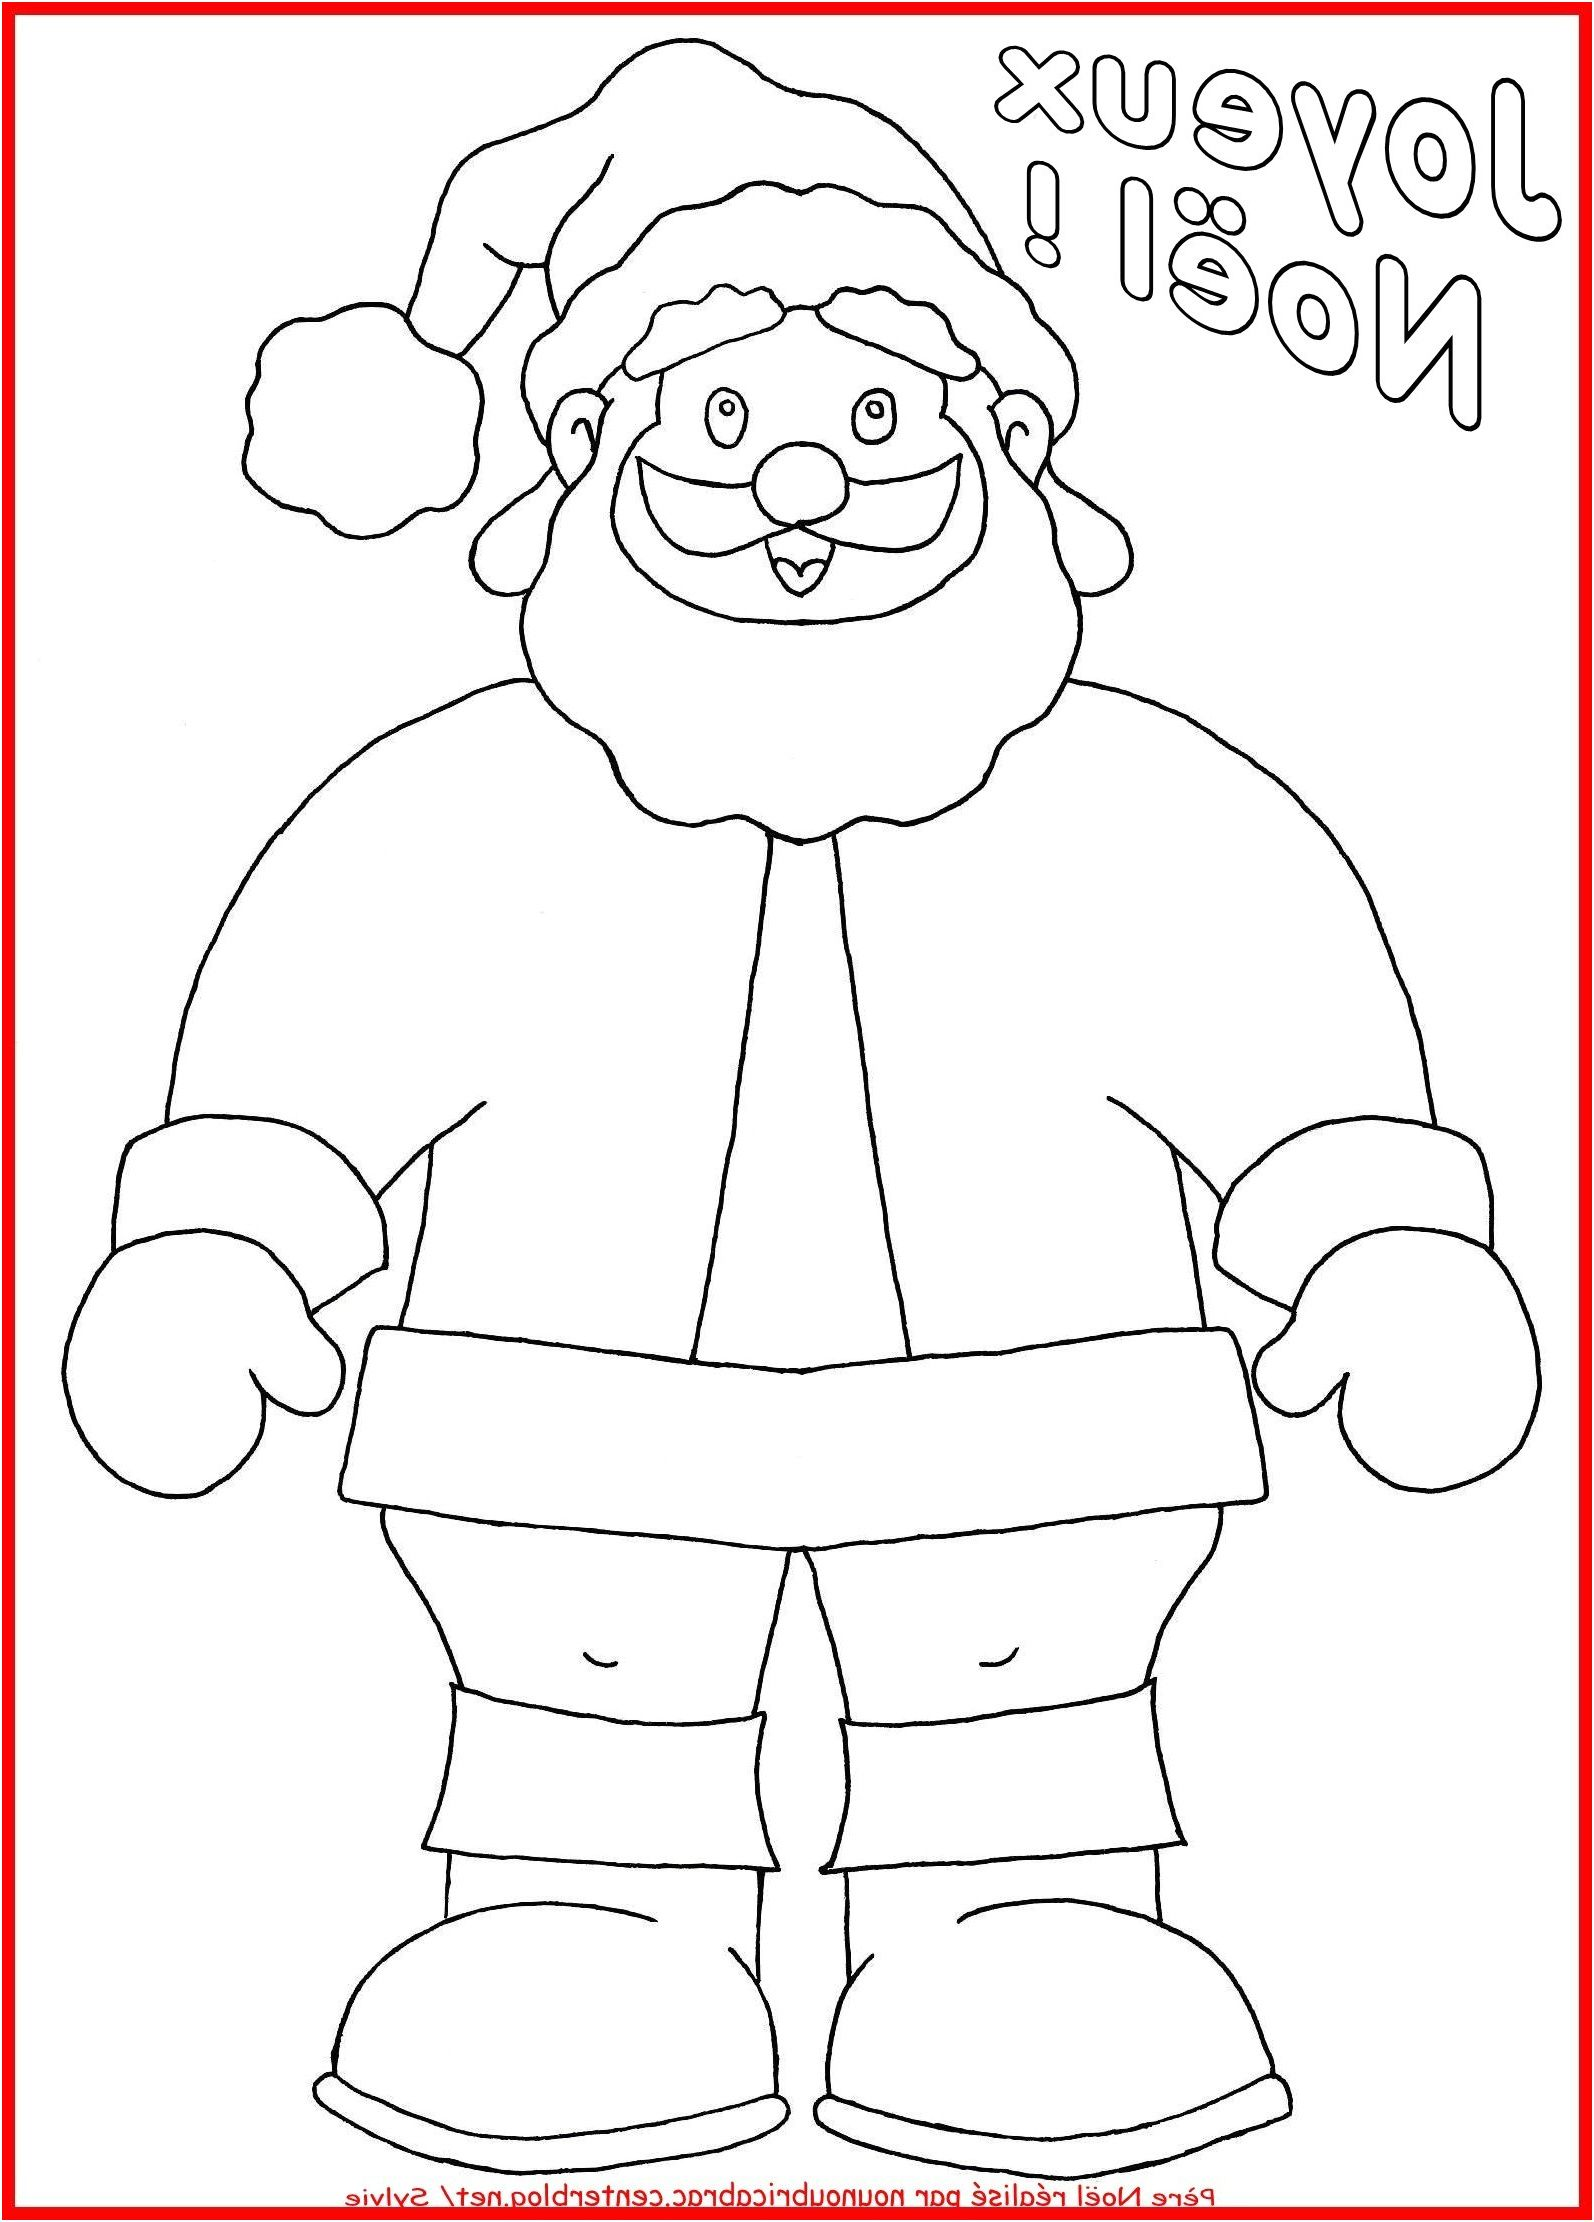 8 Adorable Coloriage Sapin De Noel Facile Photograph | Coloriage